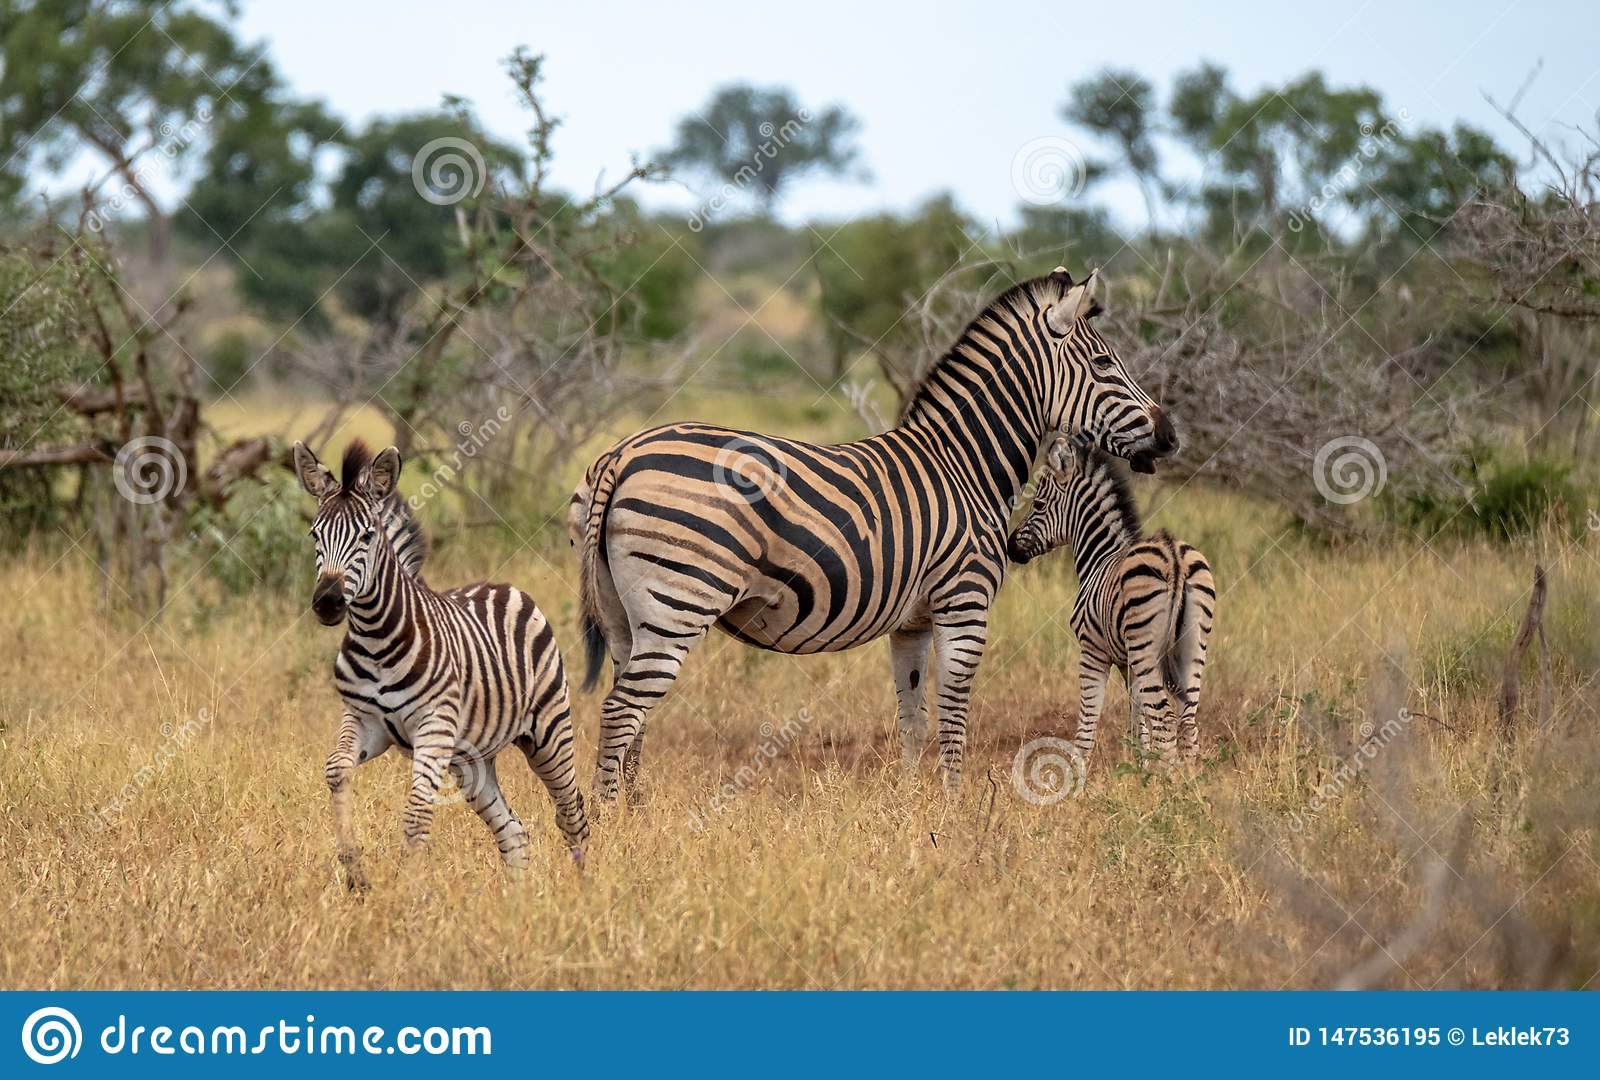 Zebra and calves photographed in the bush at Kruger National Park, South Africa